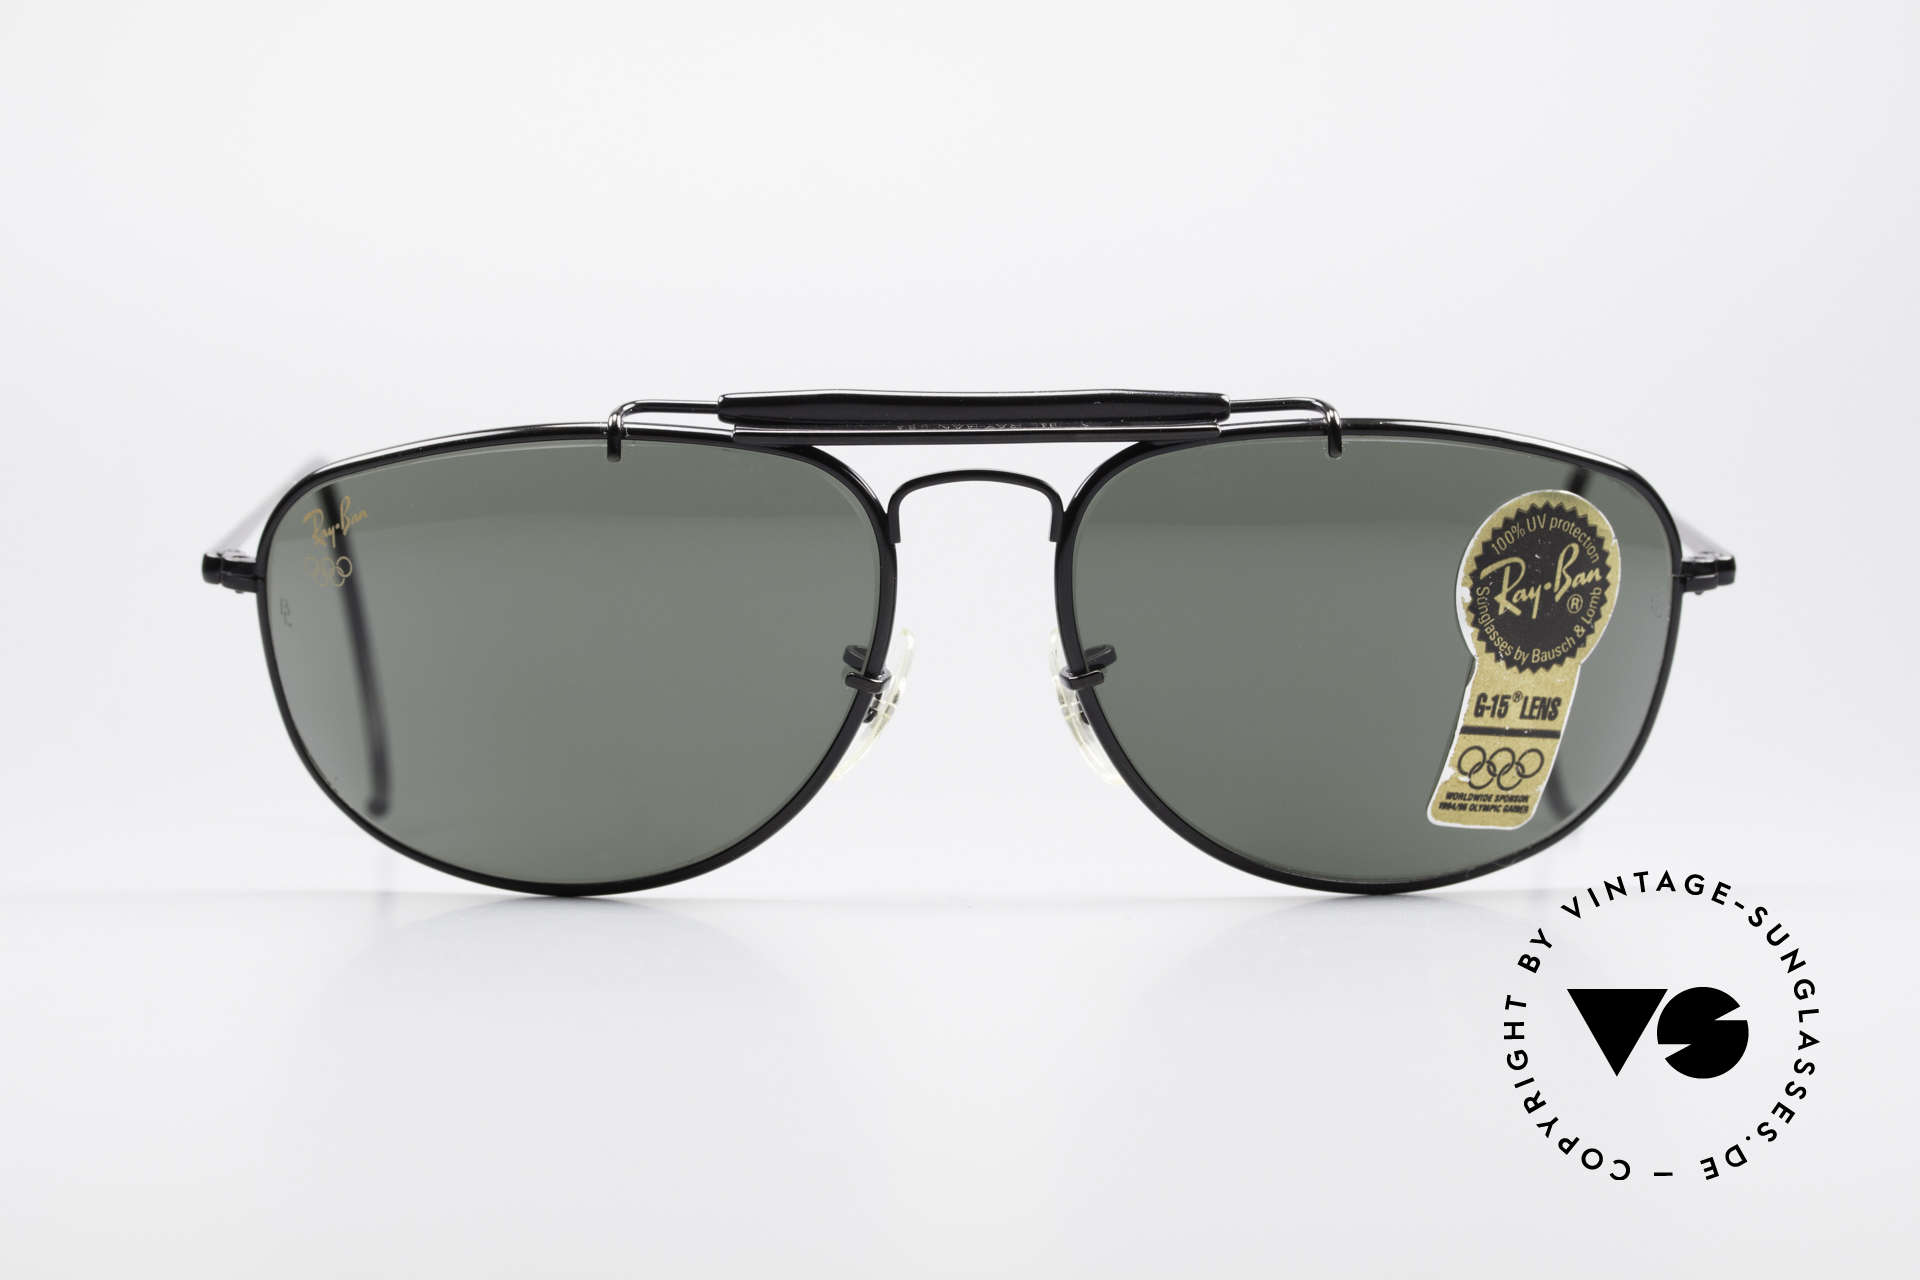 Ray Ban Sport Metal 1992 Olympic Series B&L USA, size 61°15 with legendary Bausch&Lomb mineral lenses, Made for Men